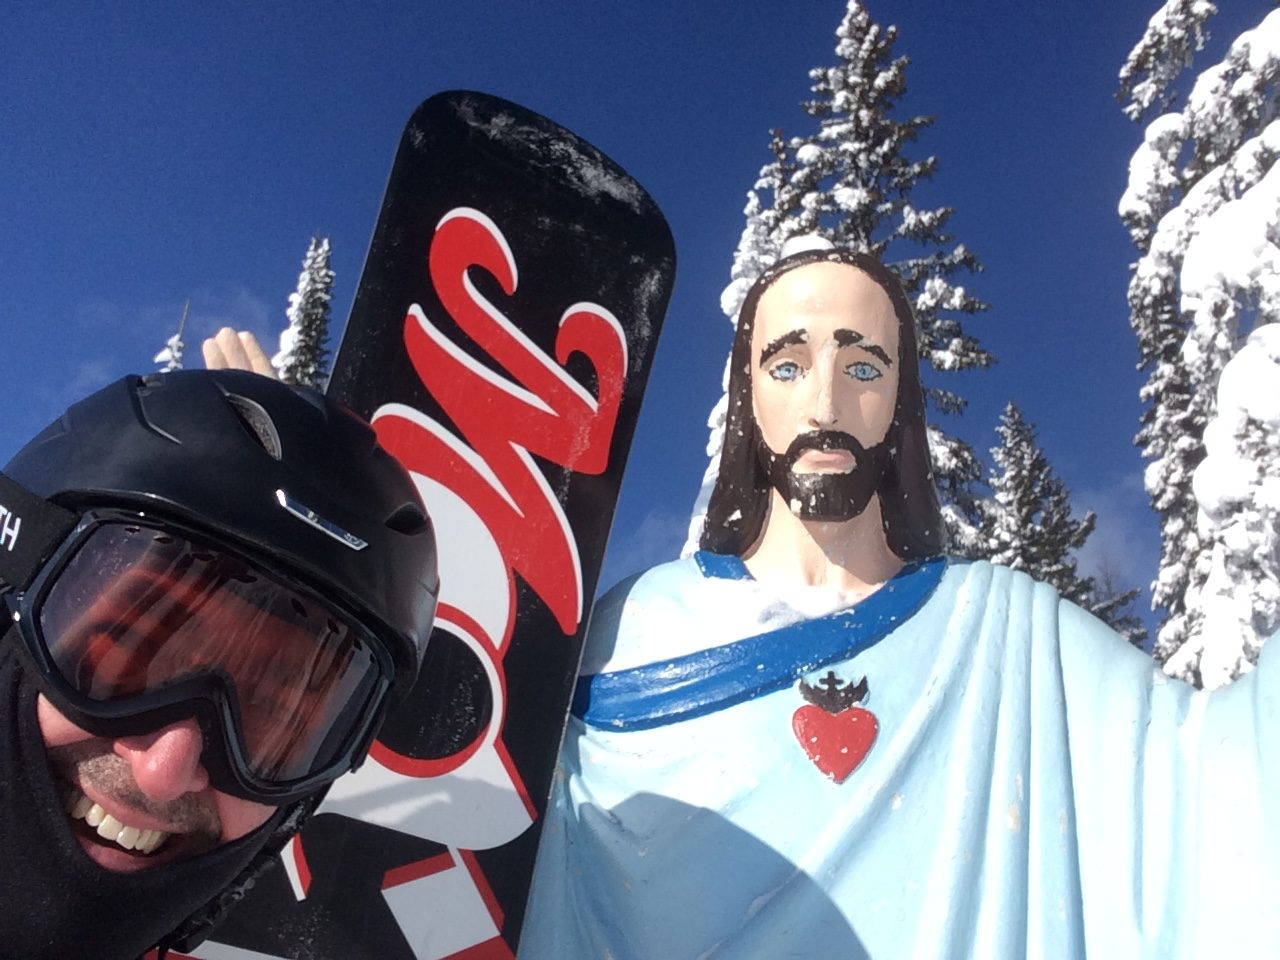 Snow Jesus at the top of Big Mountain in Whitefish, MT